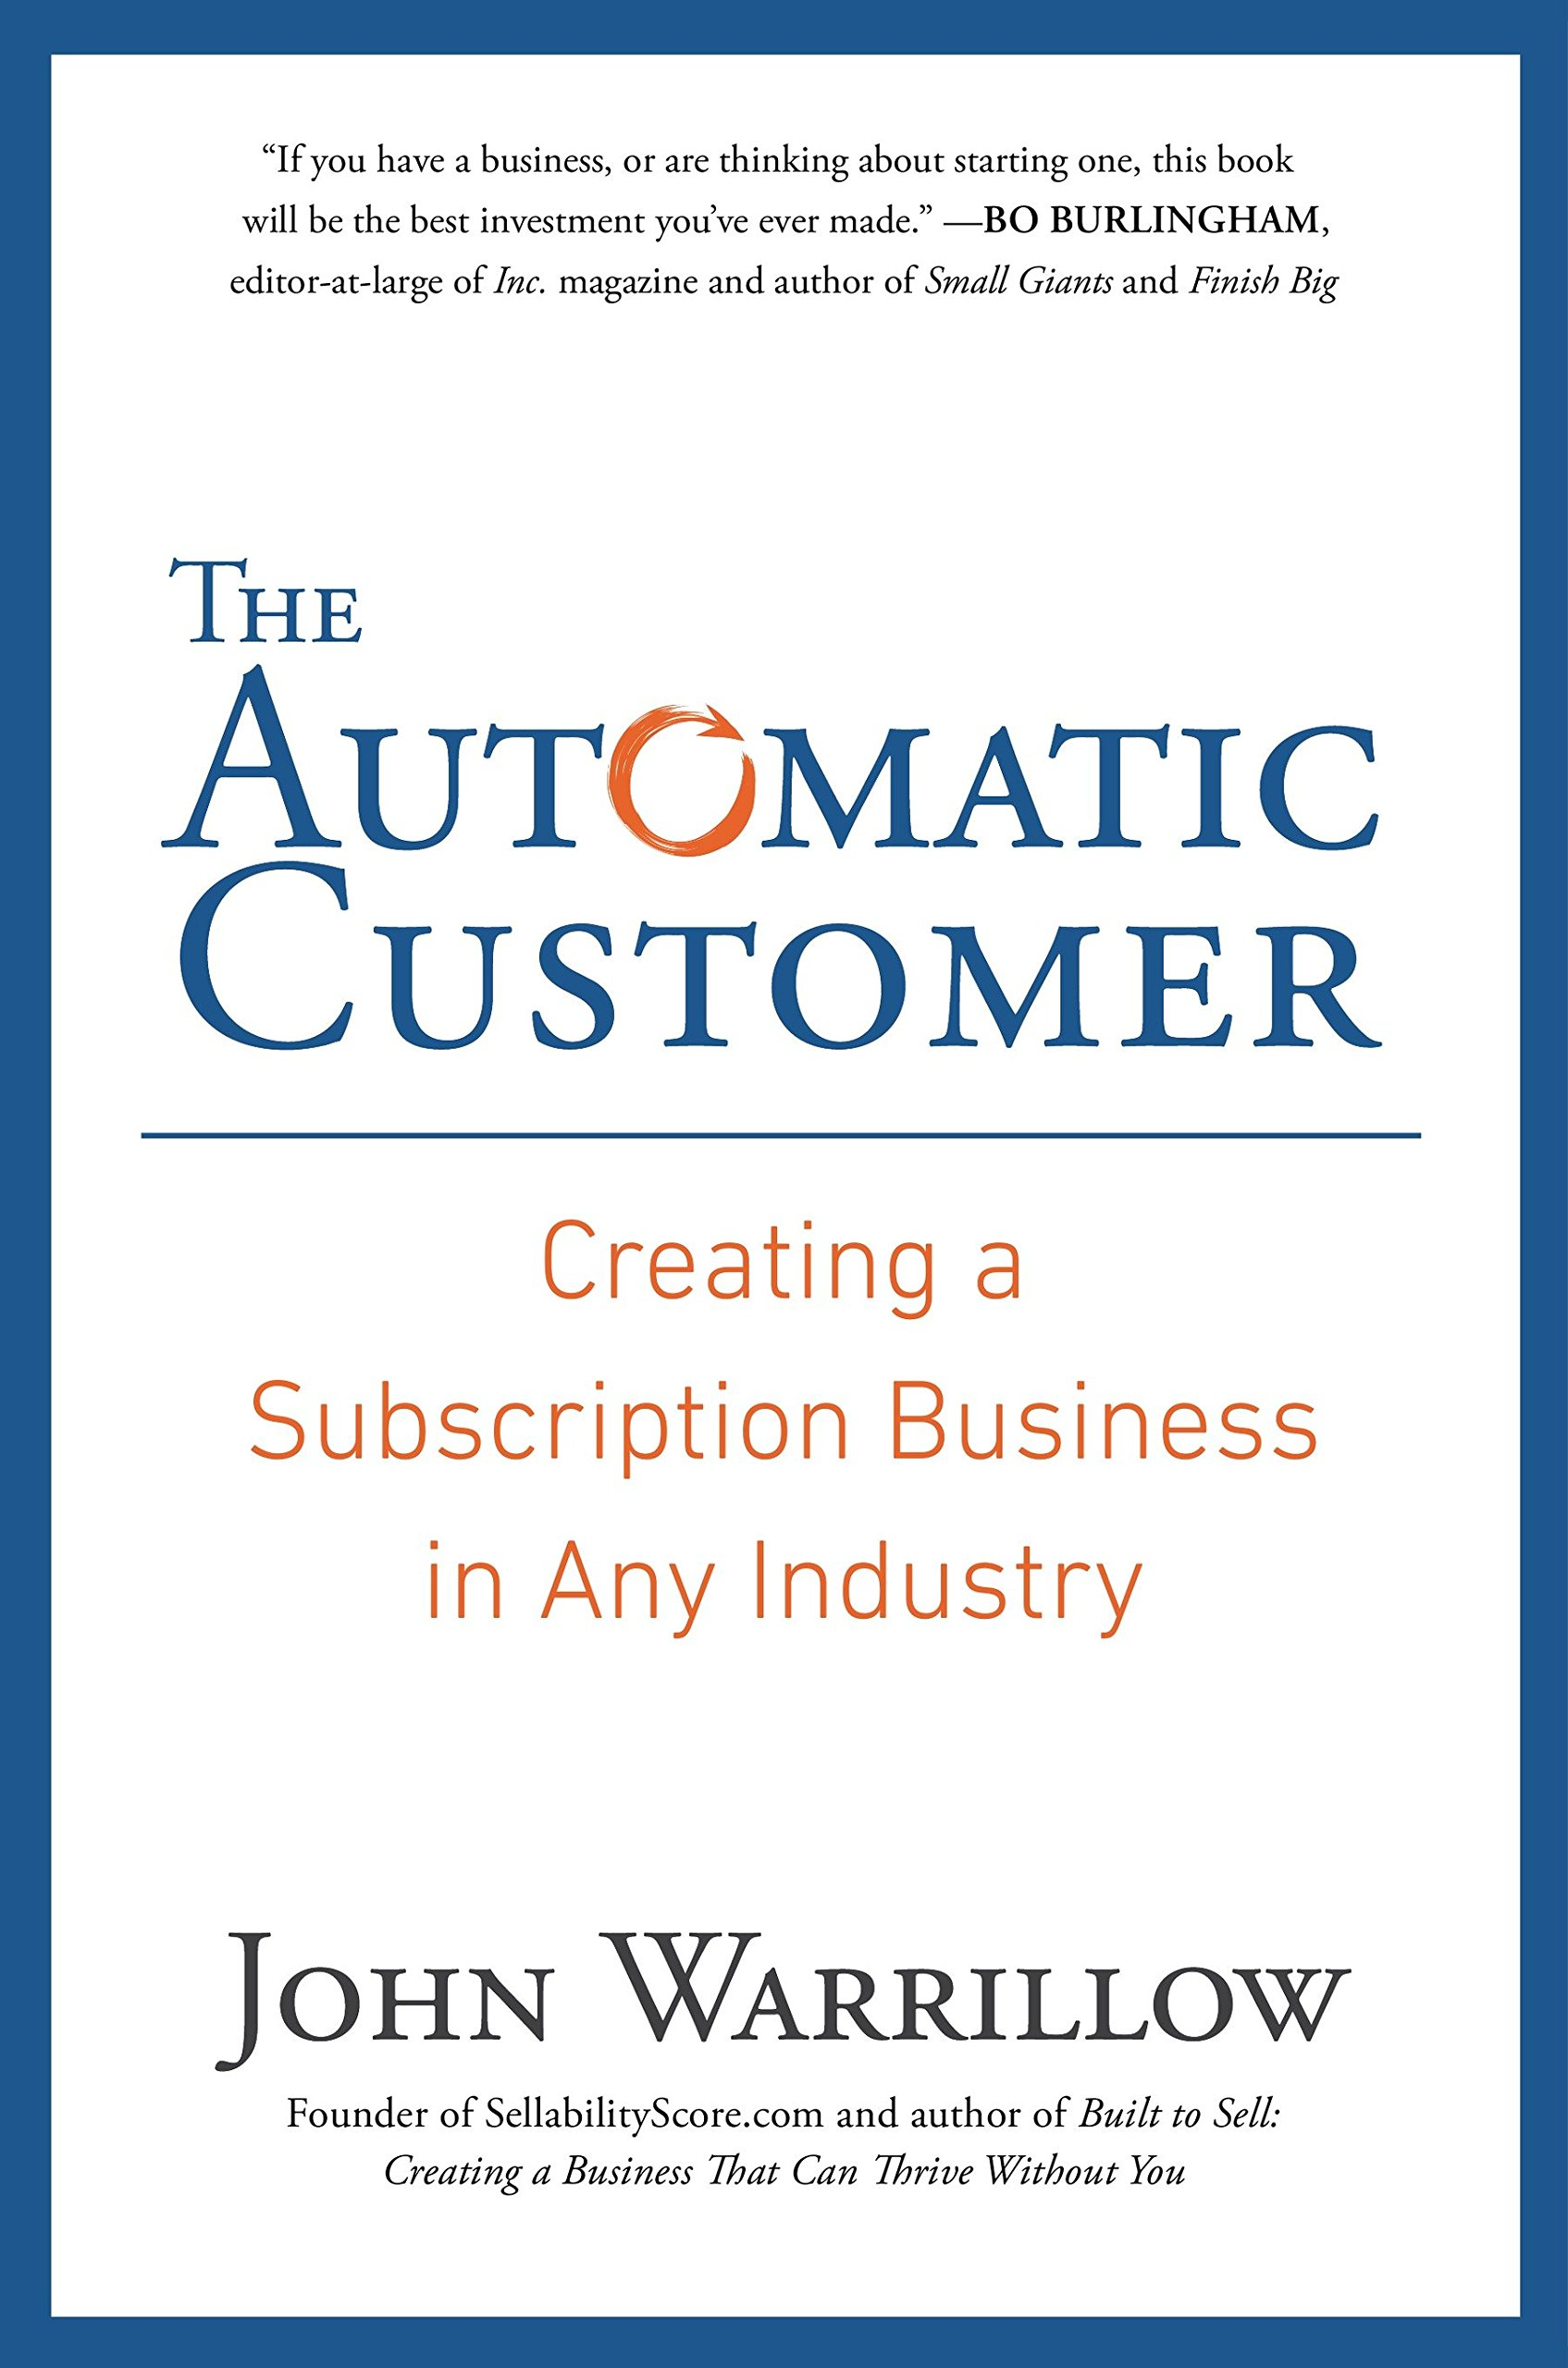 The Automatic Customer (John Warrillow)